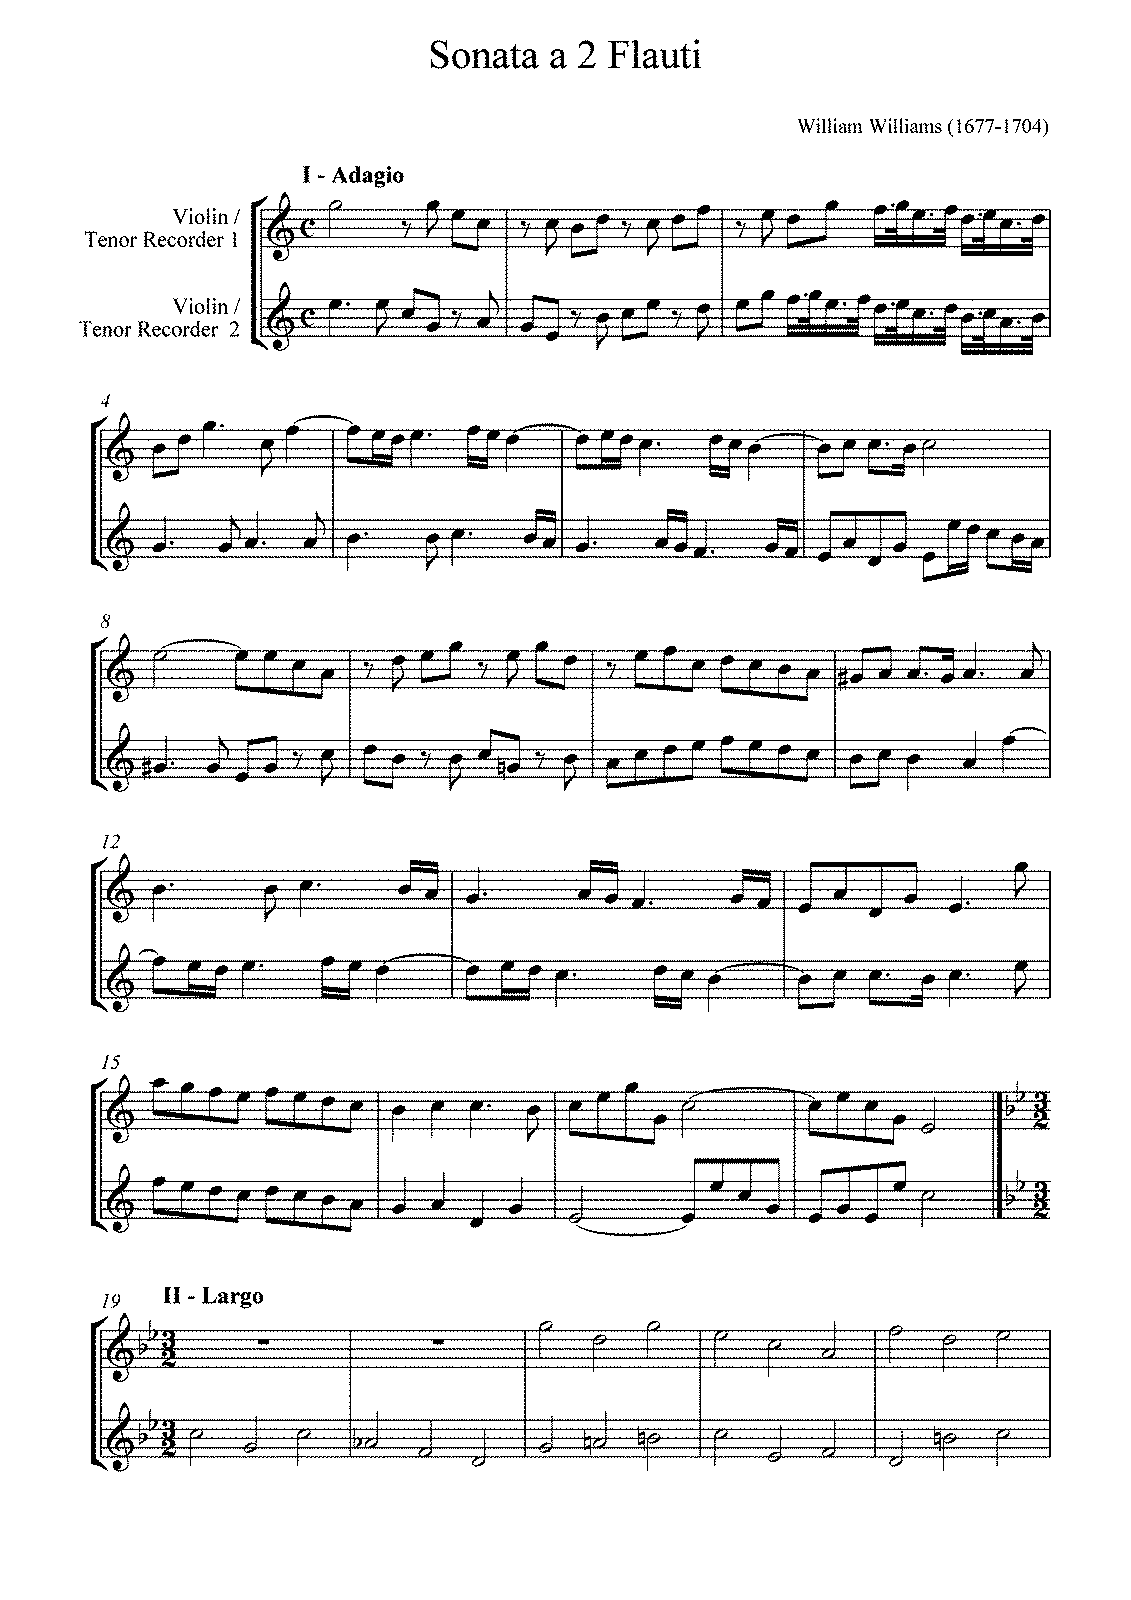 WIMA.04fc-Williams-Sonata-for-Flutes-Violins-Score.pdf